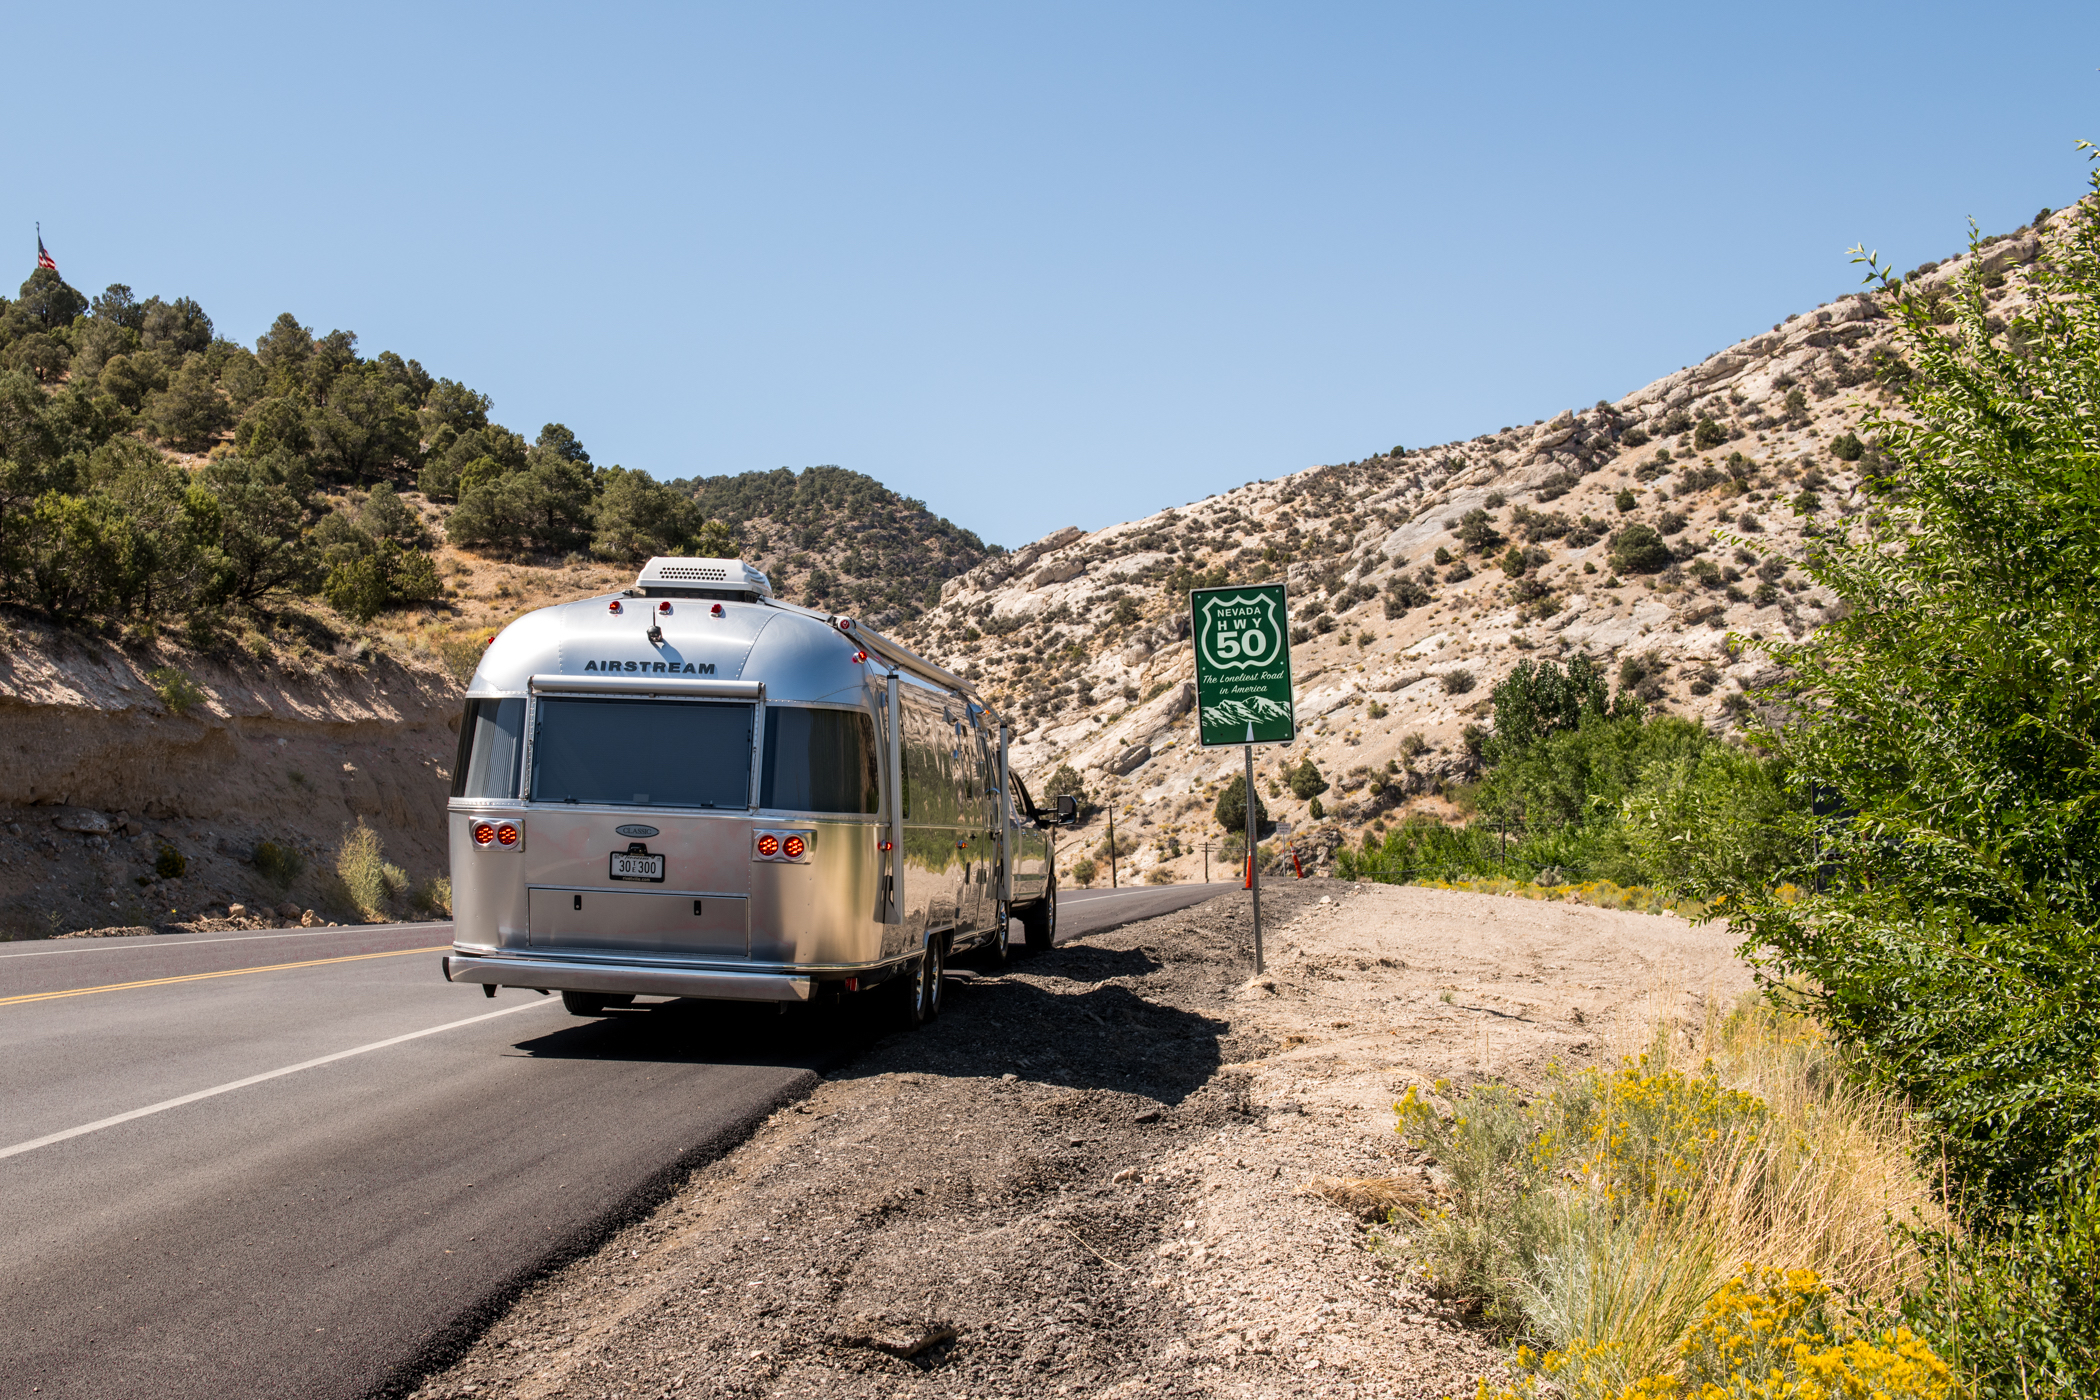 U.S. Highway 50, the Loneliest Road in America